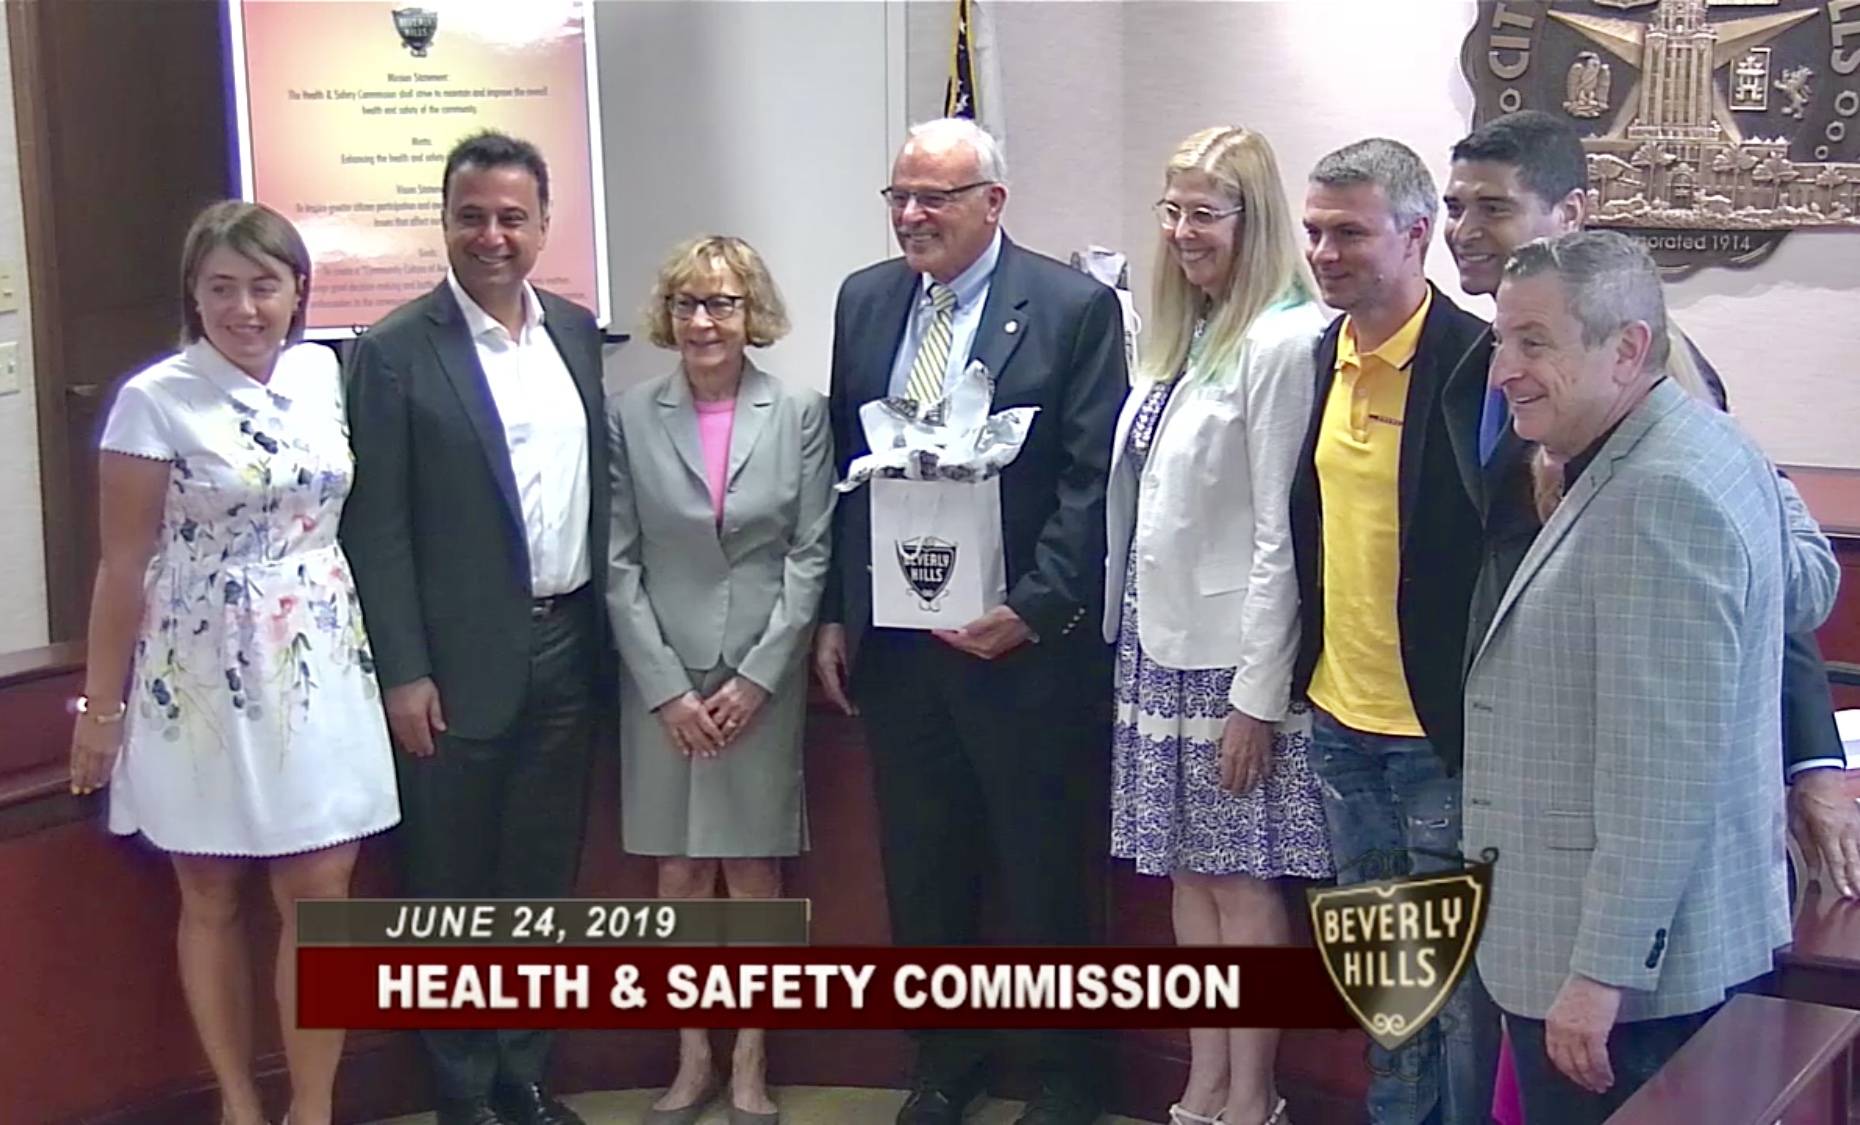 BEVERLY HILLS HEALHT & SAFETY COMMISSION